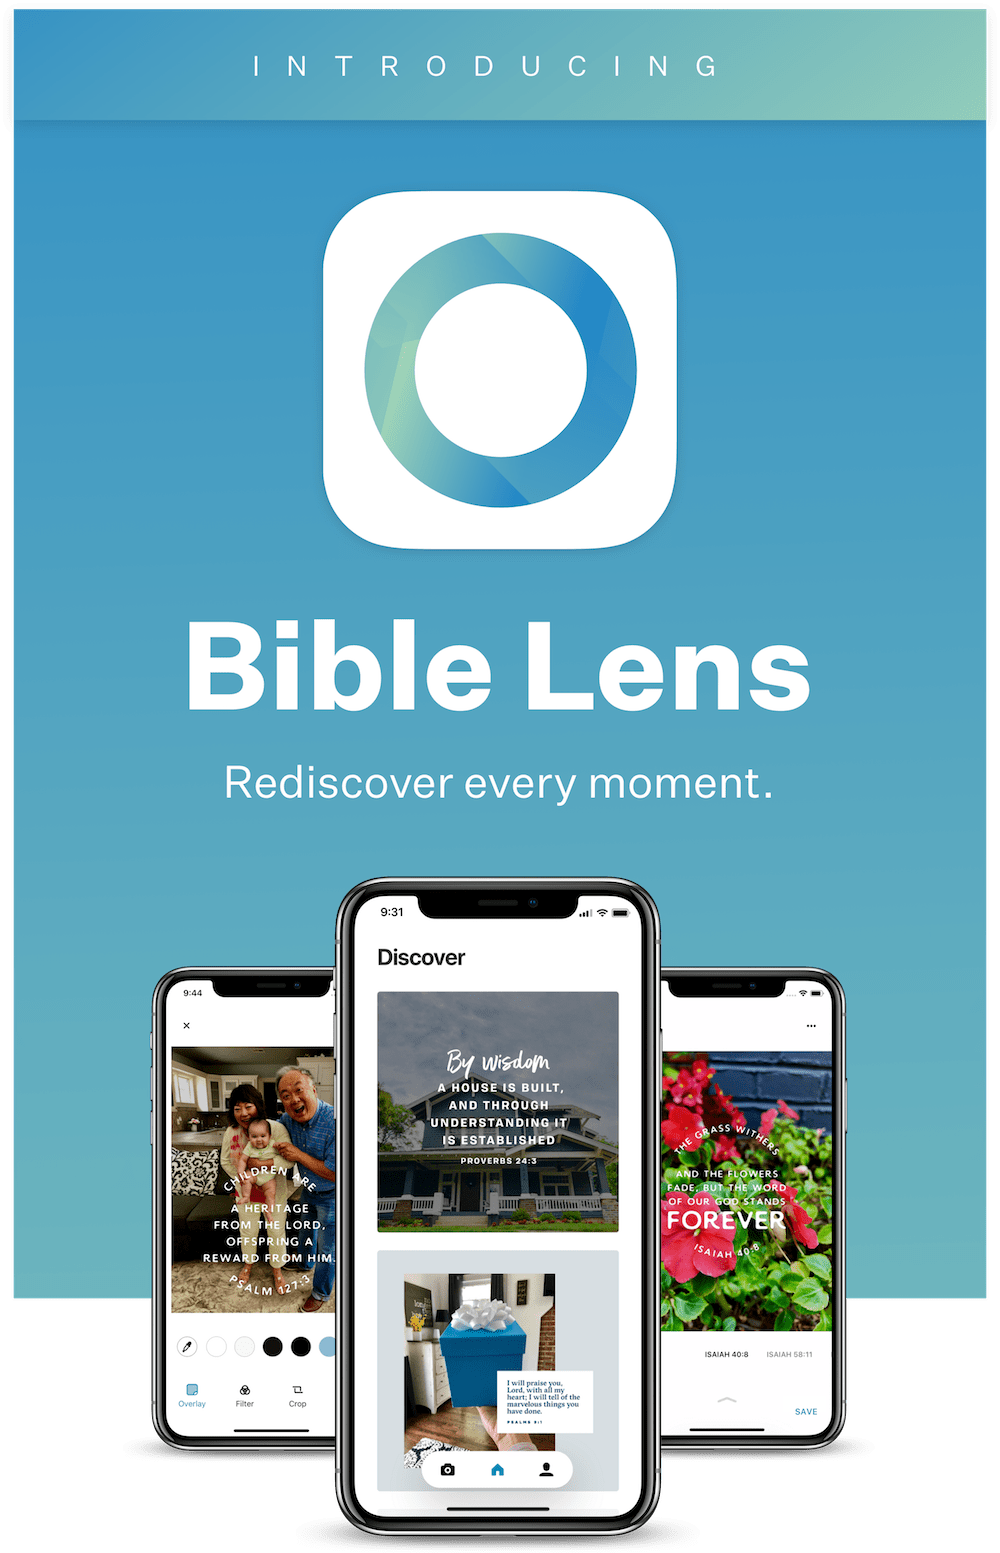 Introducing Bible Lens - Rediscover every moment.